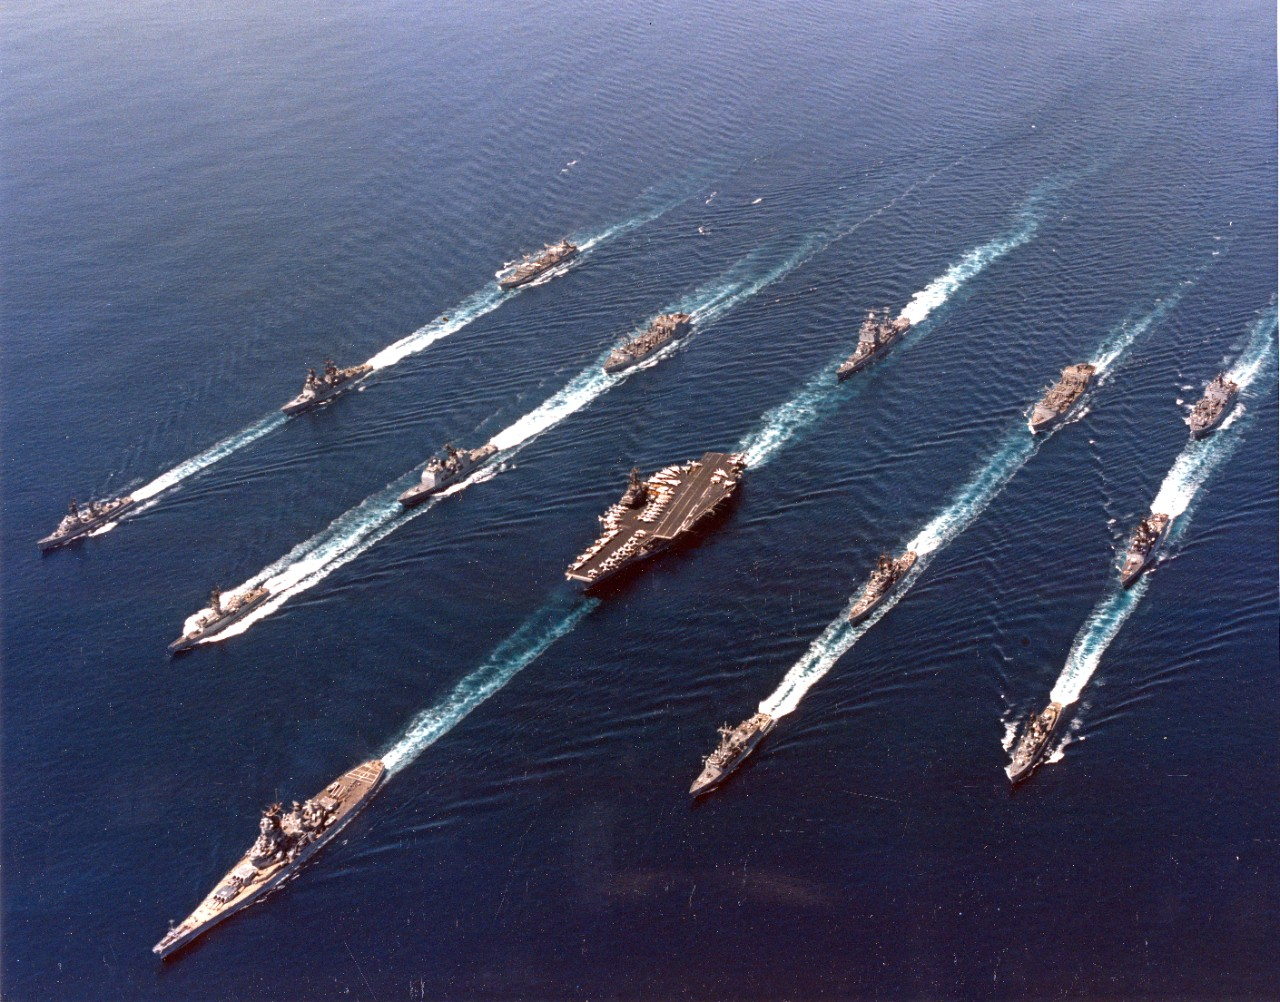 An Iowa class battleship leads a battle group at sea in the 1980s.